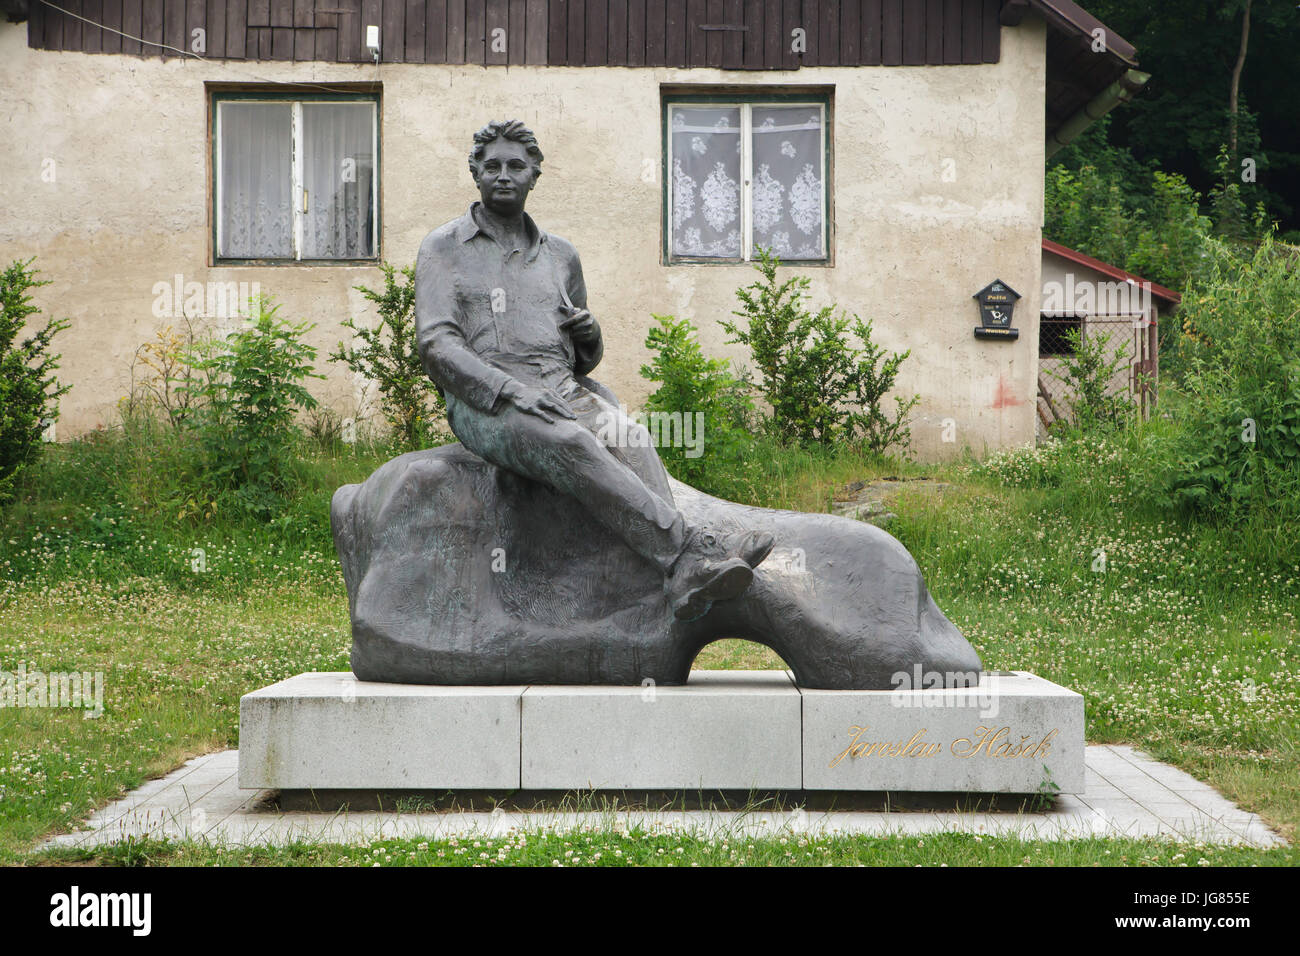 Monument to Czech novelist Jaroslav Hašek by Czech sculptor Josef Malejovský (1983) in the village of Lipnice nad Stock Photo